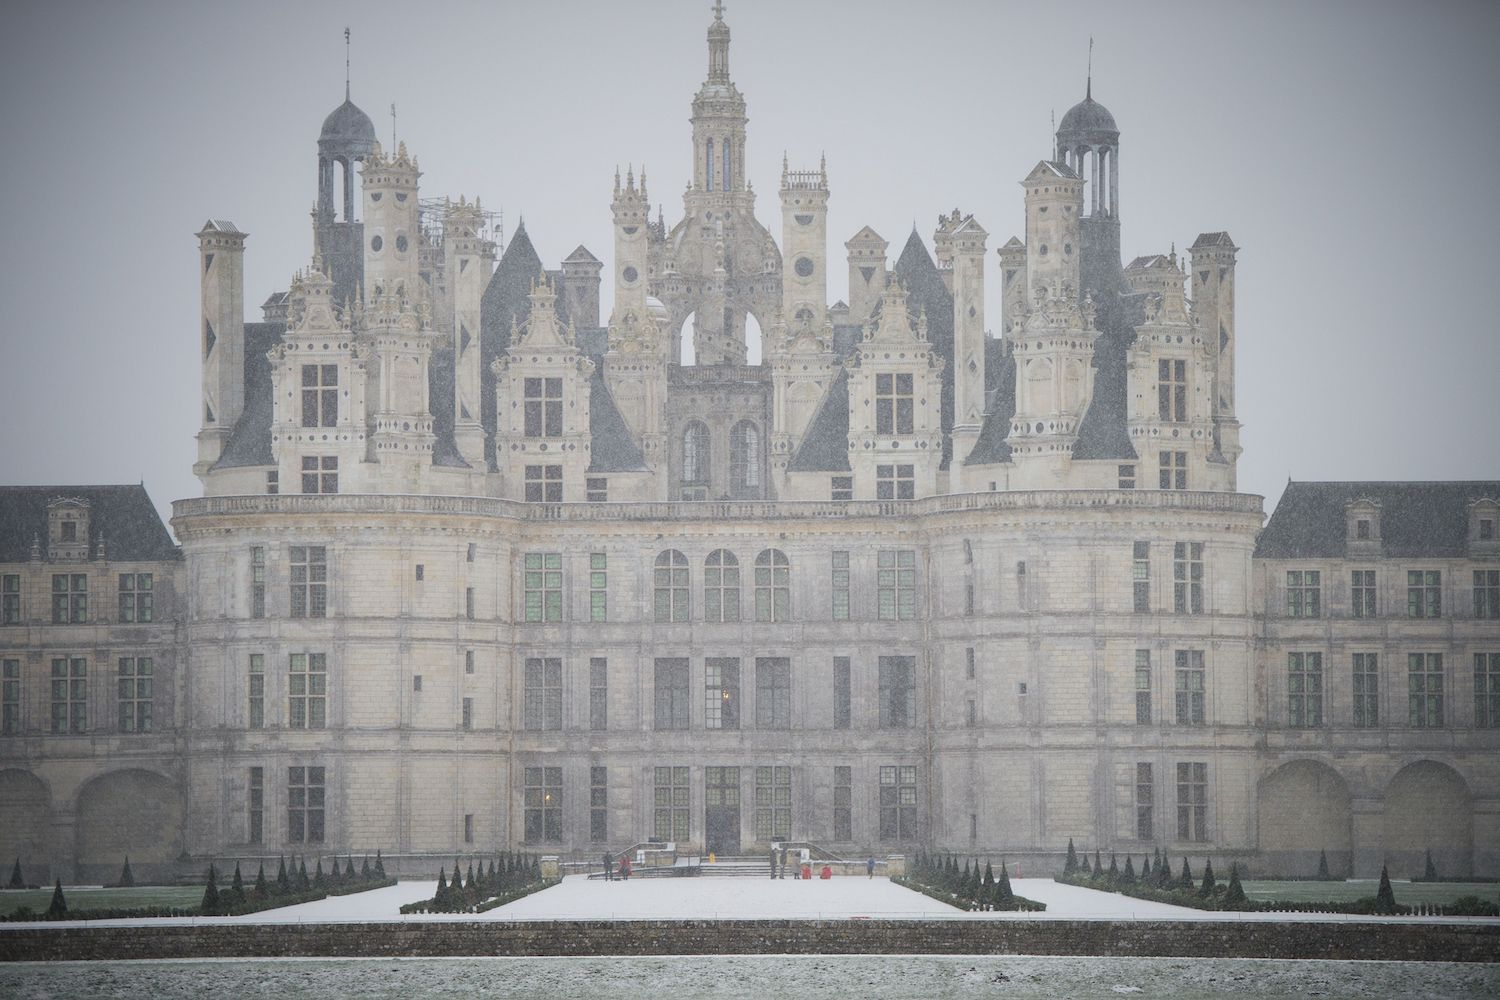 TOPSHOT - The French Renaissance Chateau de Chambord is pictured as snow falls on February 13, 2018 in Chambord, northwestern France.  / AFP PHOTO / GUILLAUME SOUVANT        (Photo credit should read GUILLAUME SOUVANT/AFP/Getty Images)